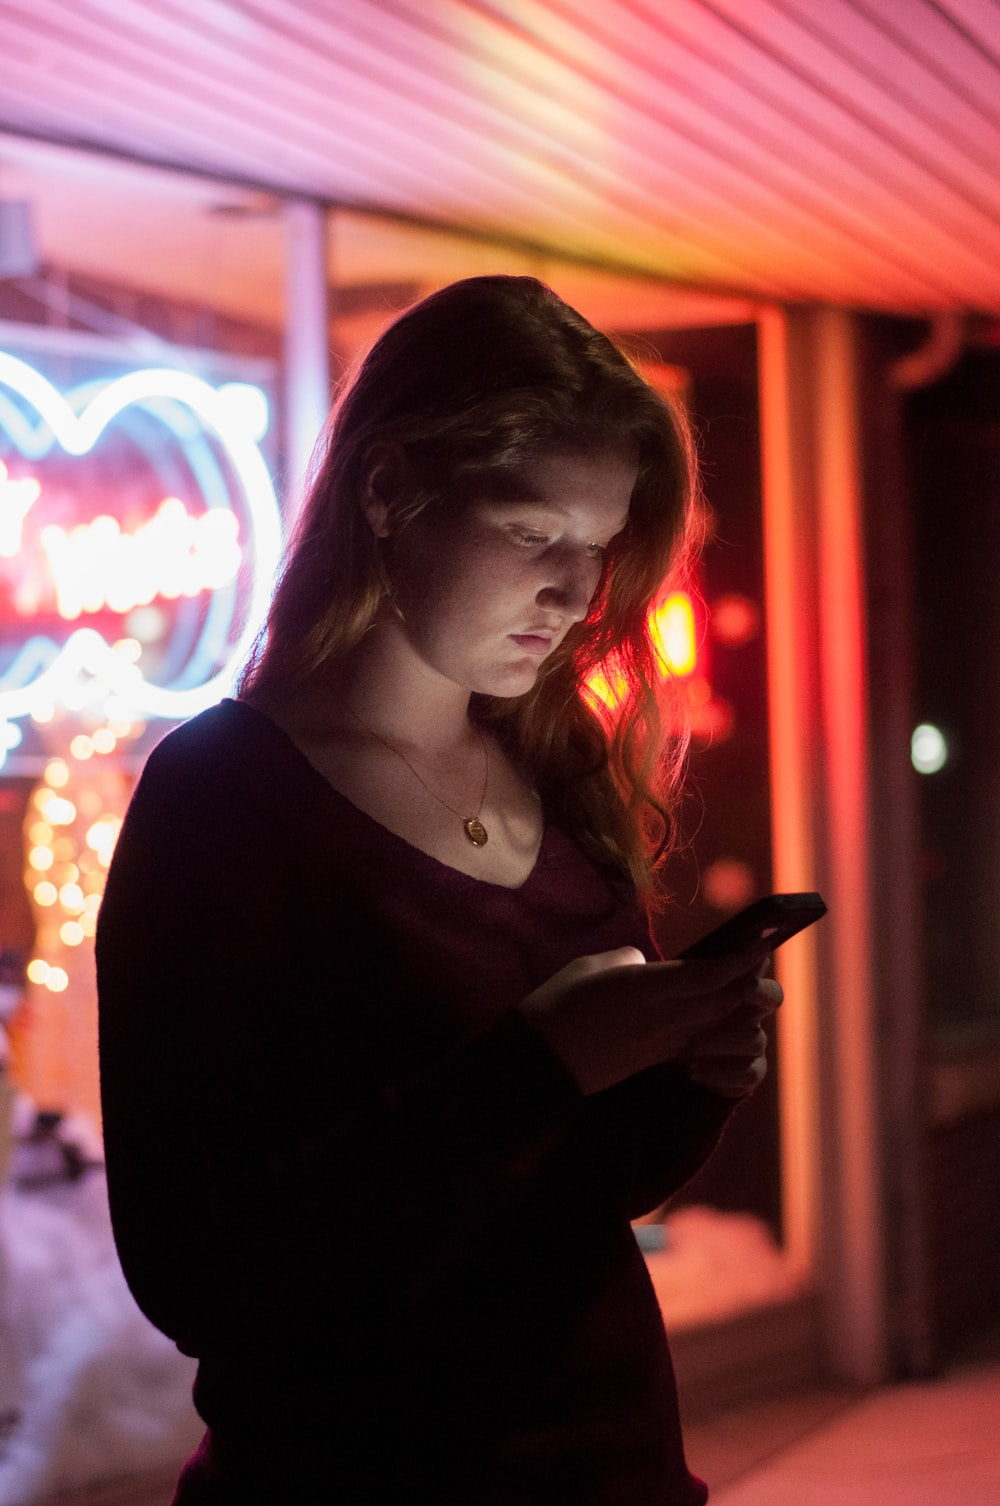 woman using smartphone in front of red and blue lighted glass store